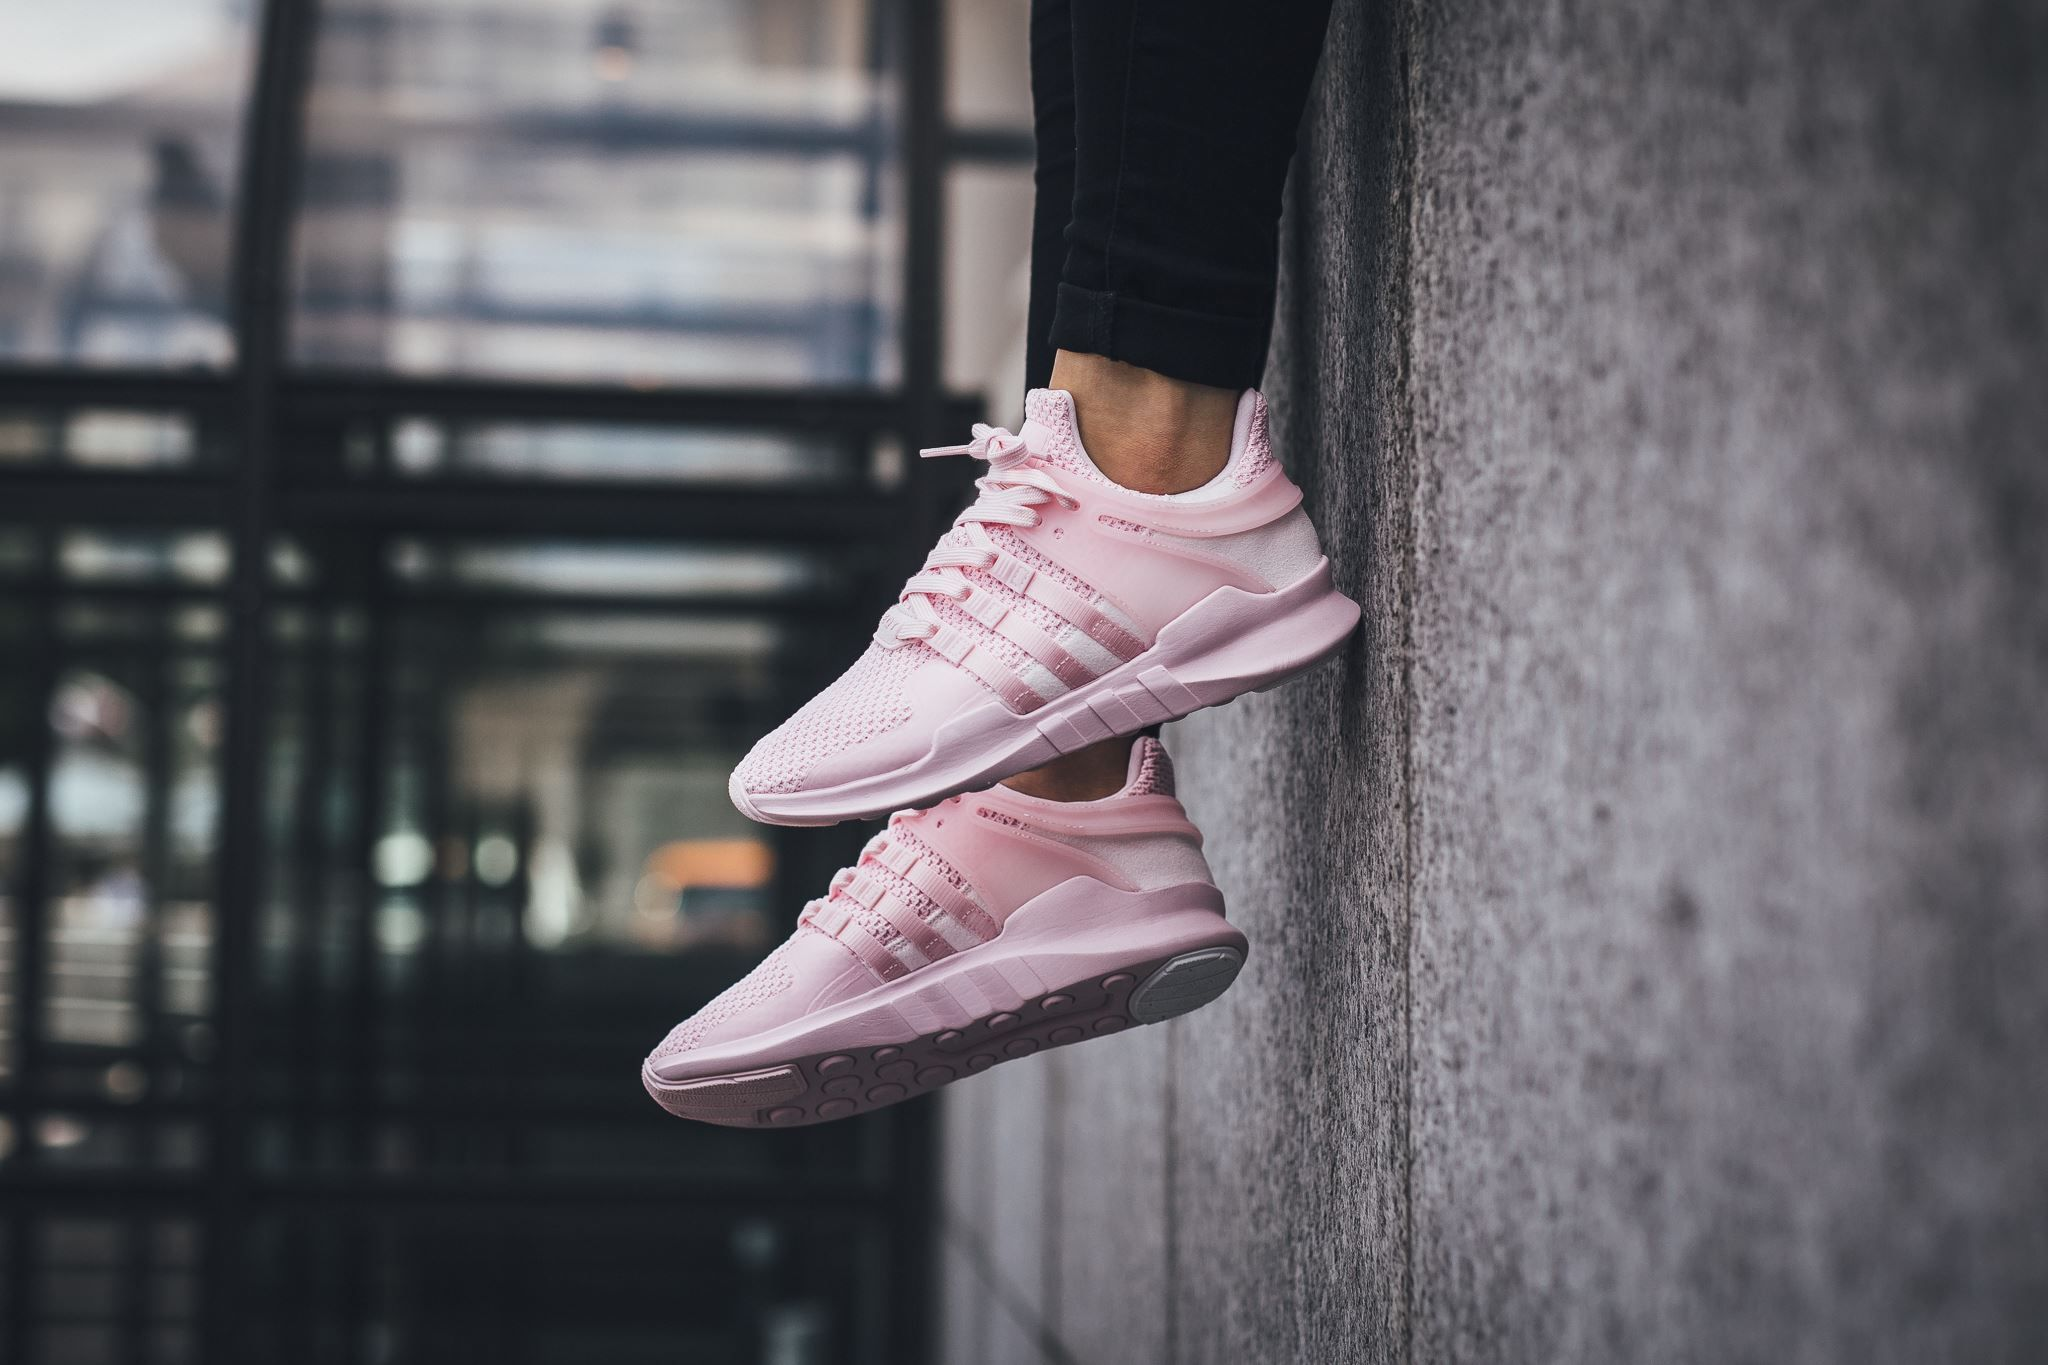 4c3796de89bb Adidas continues to decline his new ADV and introduce it an exclusive girl  colorway with the new Adidas EQT Support ADV Pink.